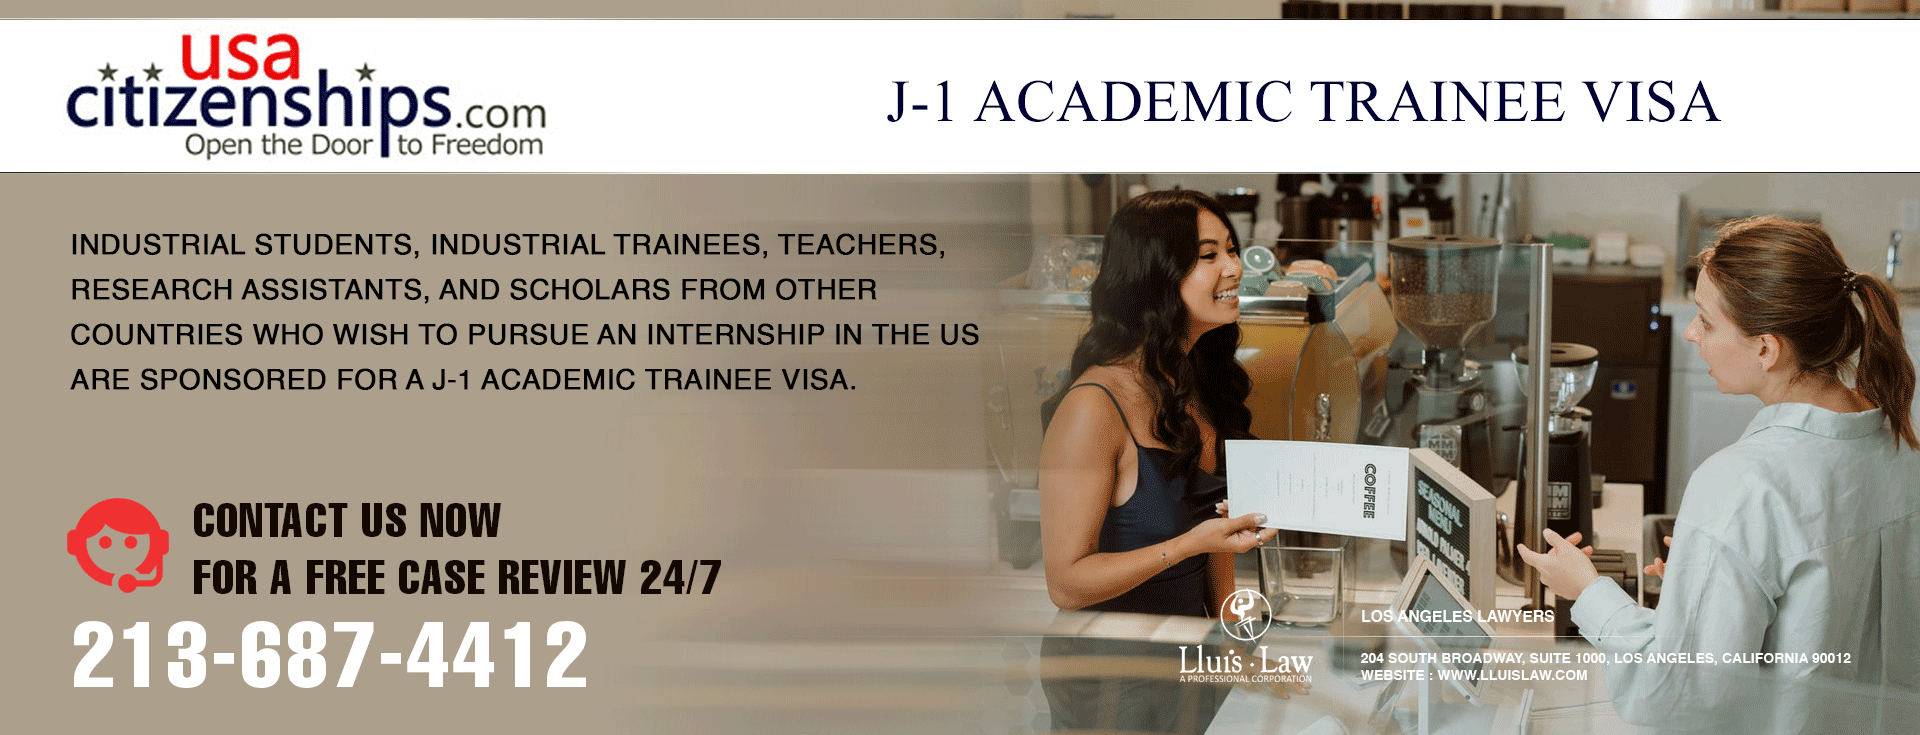 J-1 Academic Trainee Visa